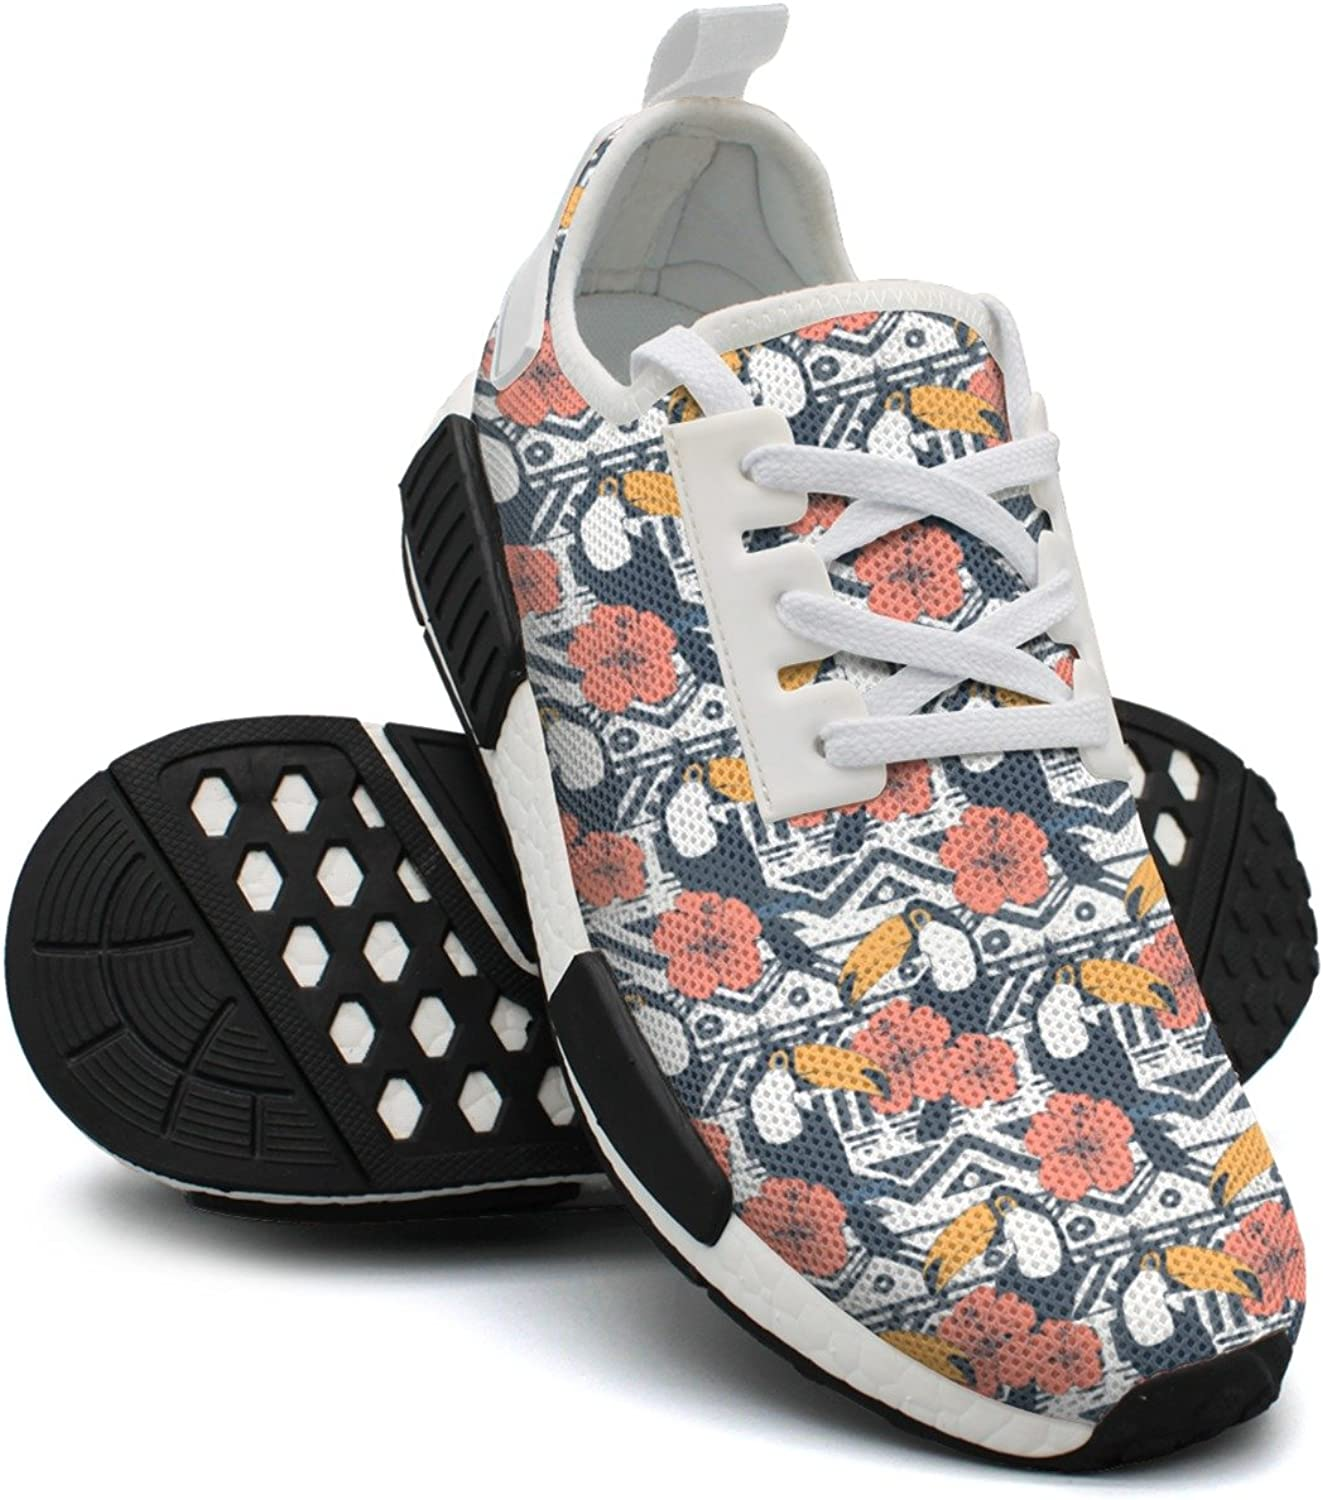 Ktyyuwwww Womens Ladies colorful Camping Tribal Pattern with Keel Billed Toucan Navy Casual Running shoes